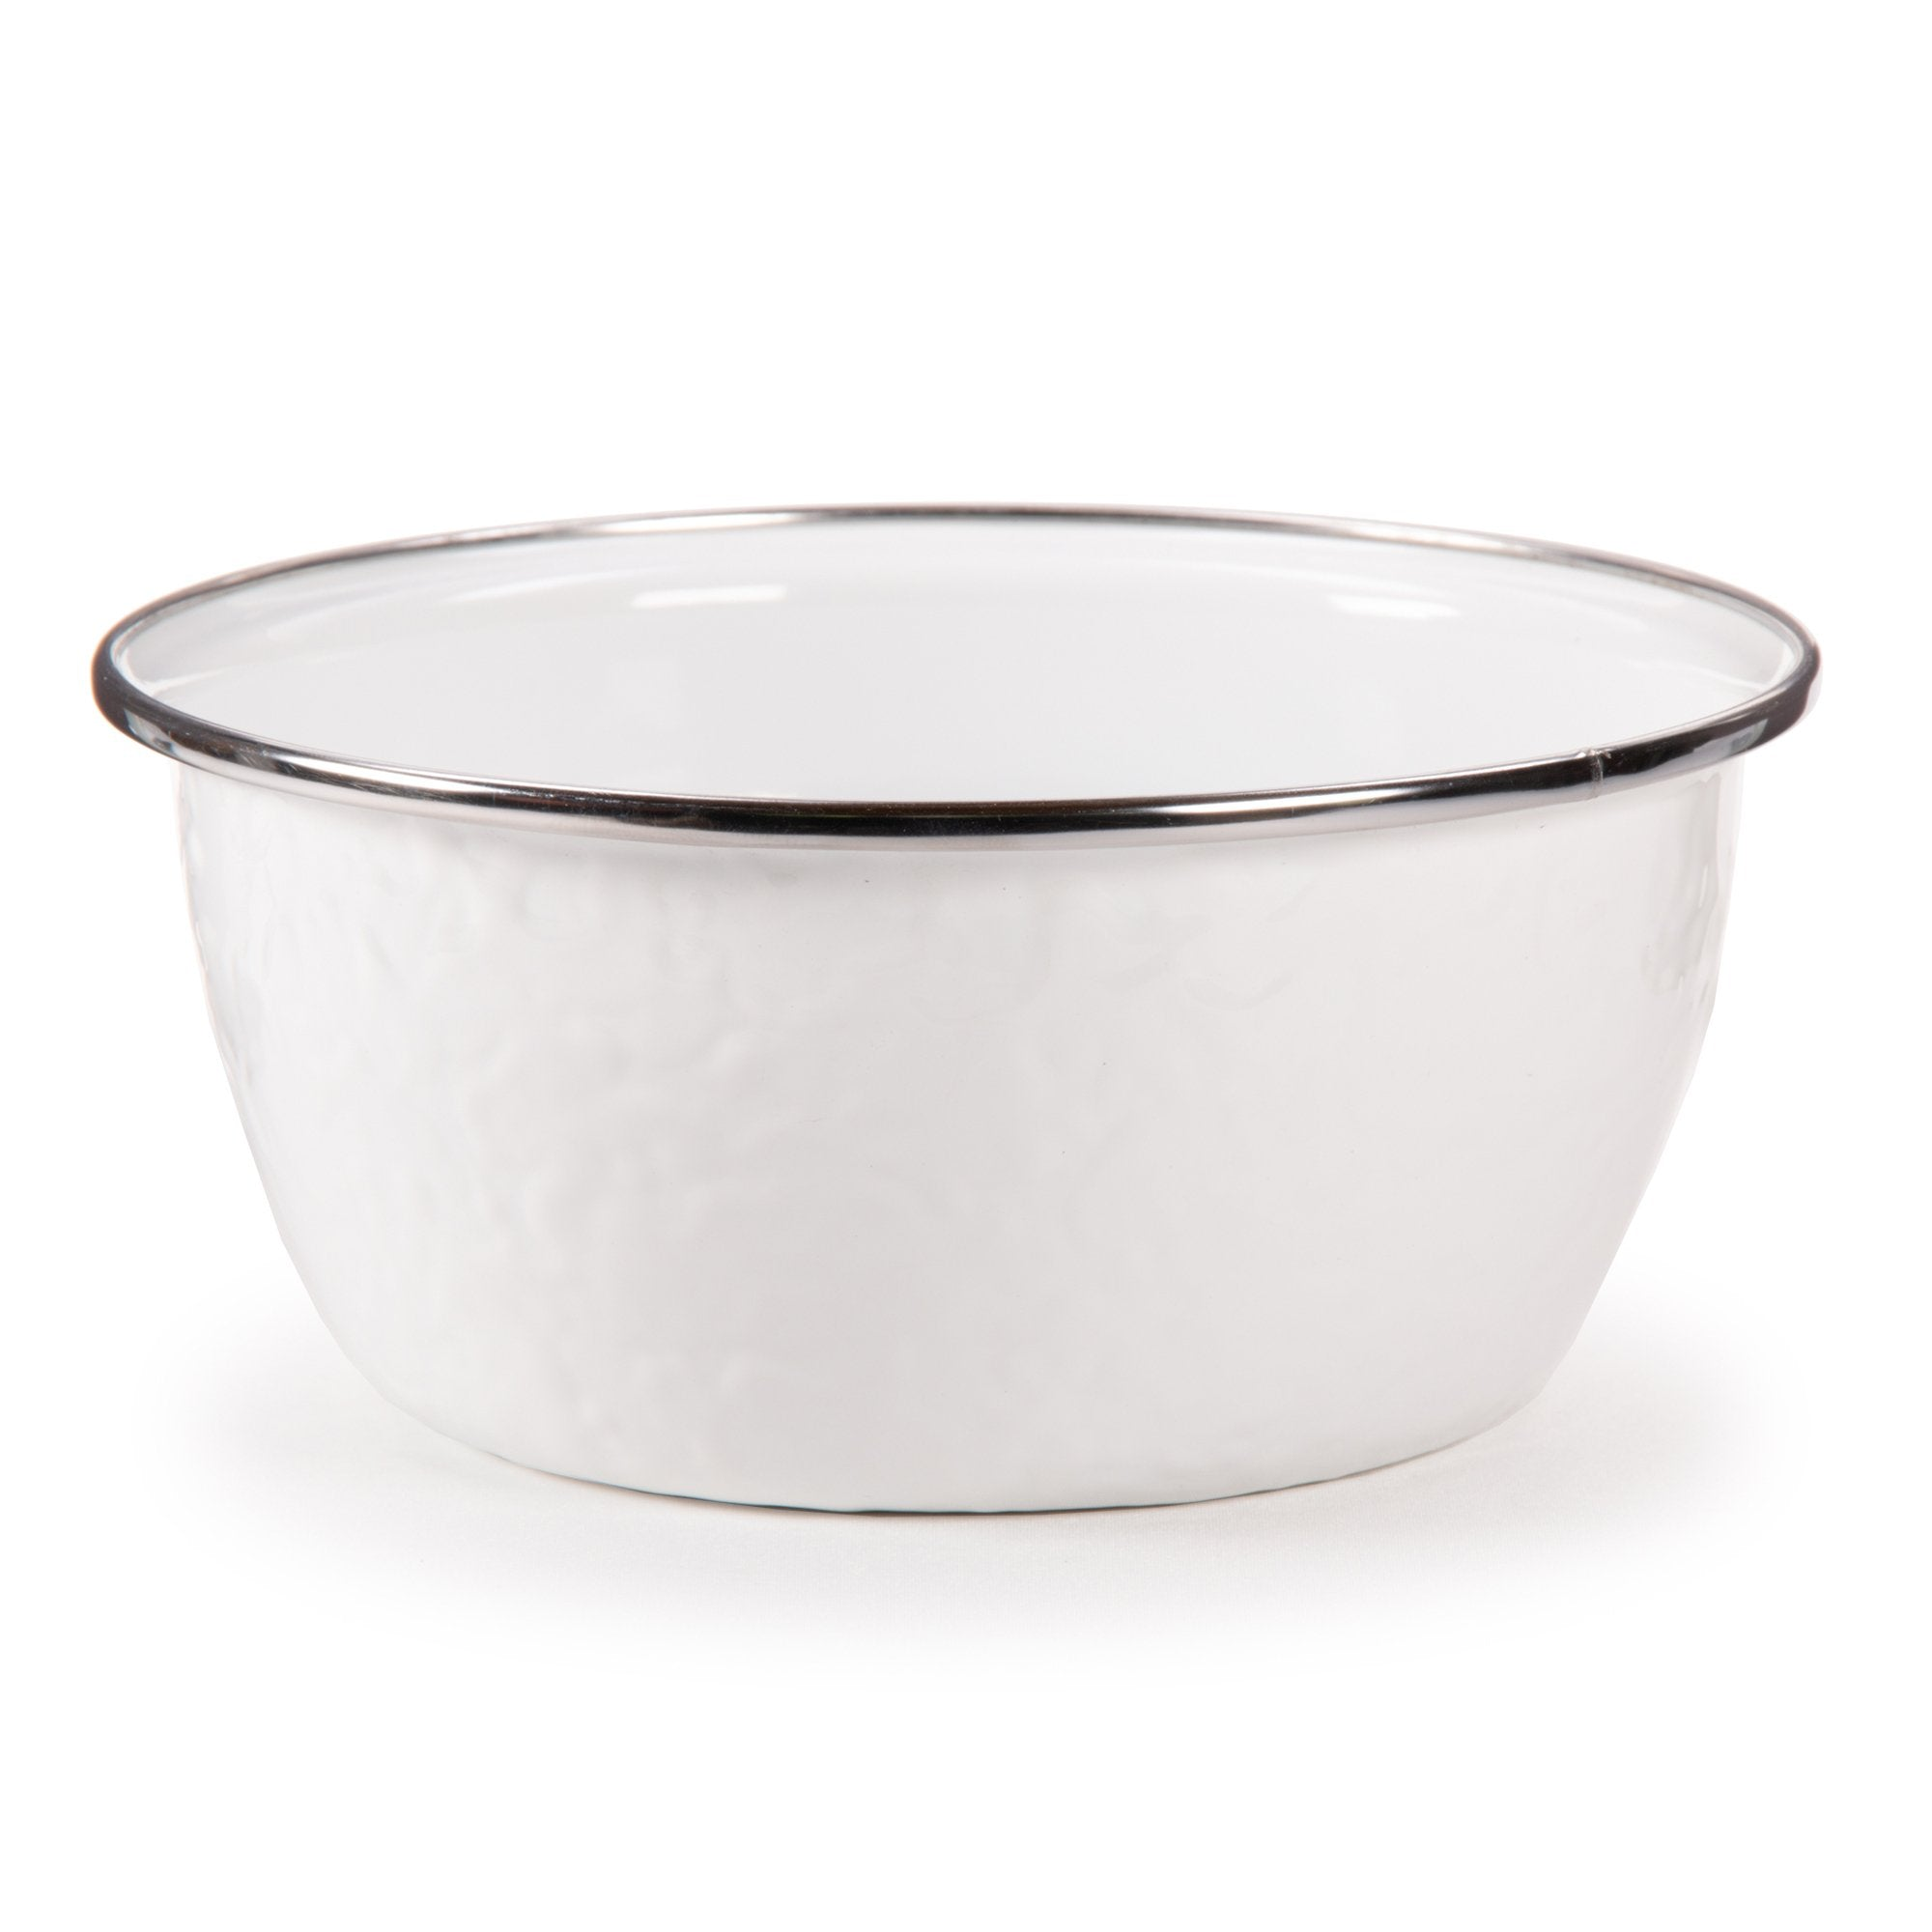 WW61 - Solid White Pattern - Salad Bowl